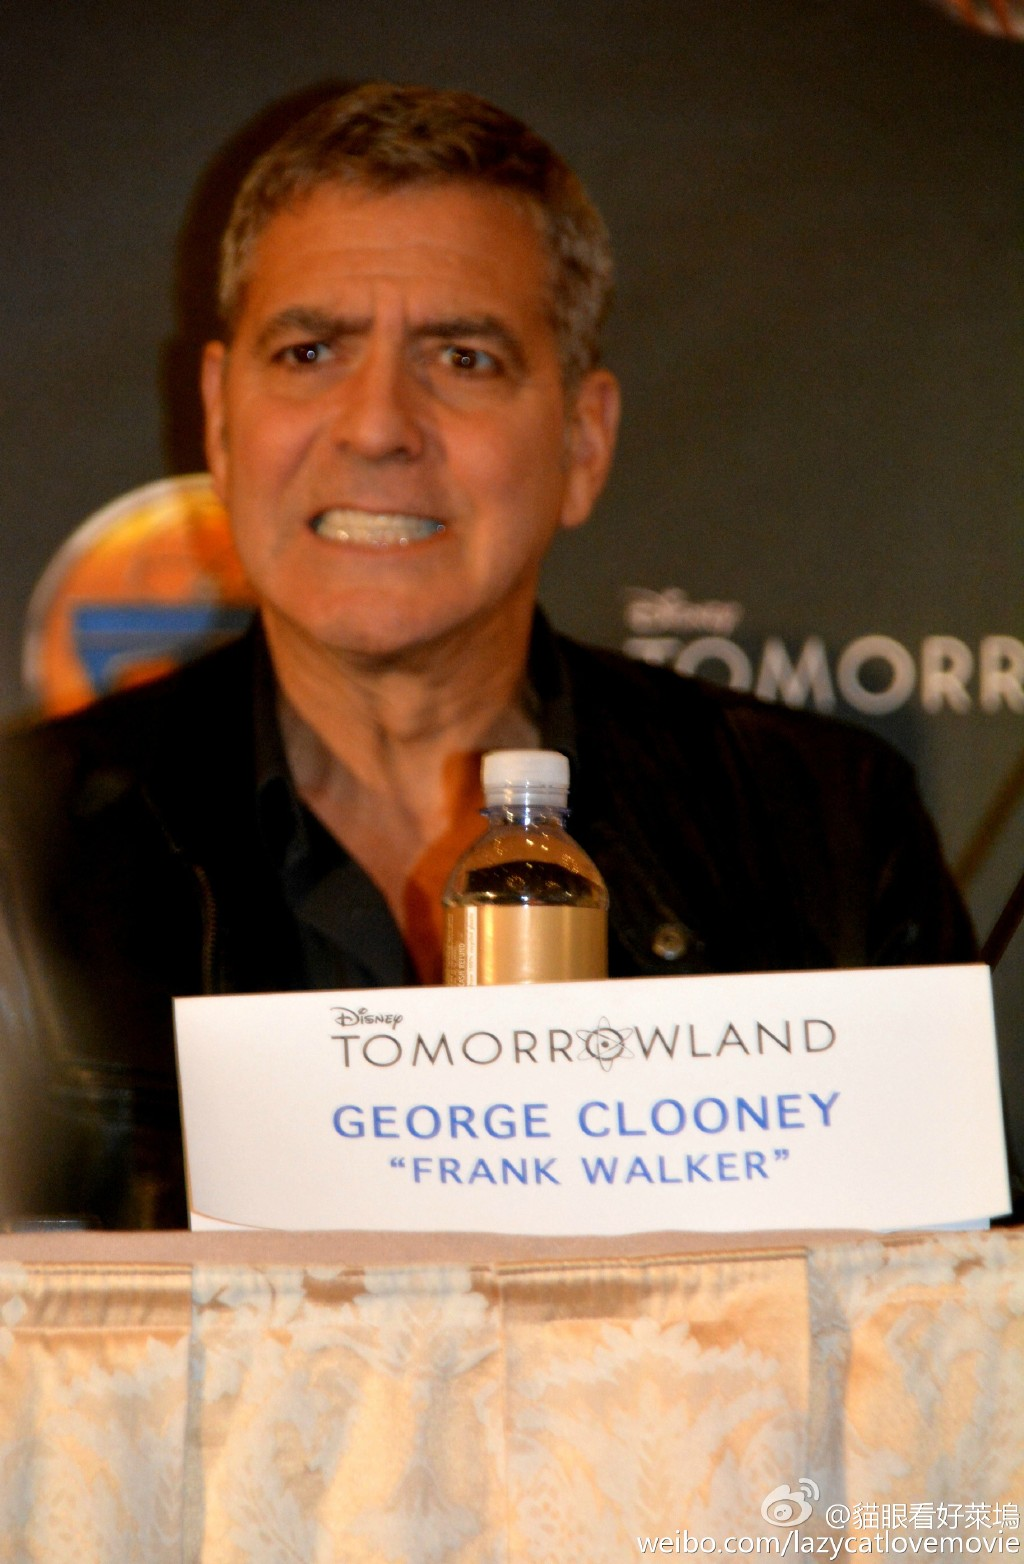 George Clooney at the press conference of TOMORROWLAND 8th May 2015 73c5c989gw1ery0m6mfbwj21er25iwzx